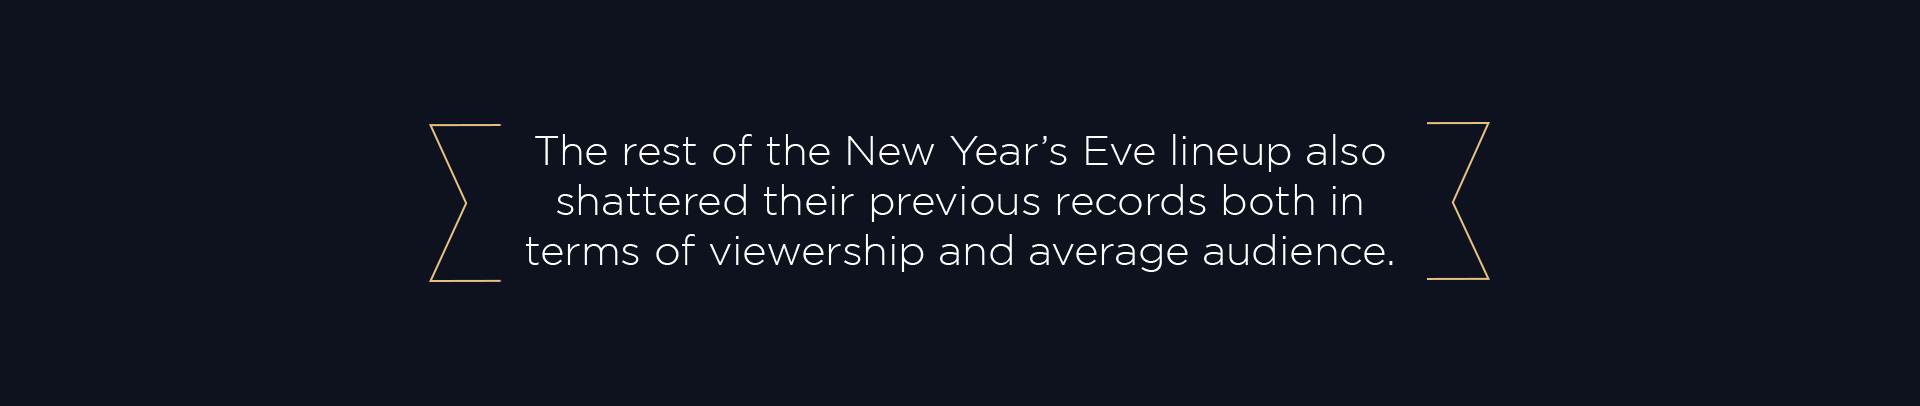 The rest of the New Year's Eve lineup also shattered their previous records both in terms of viewership and average audience.